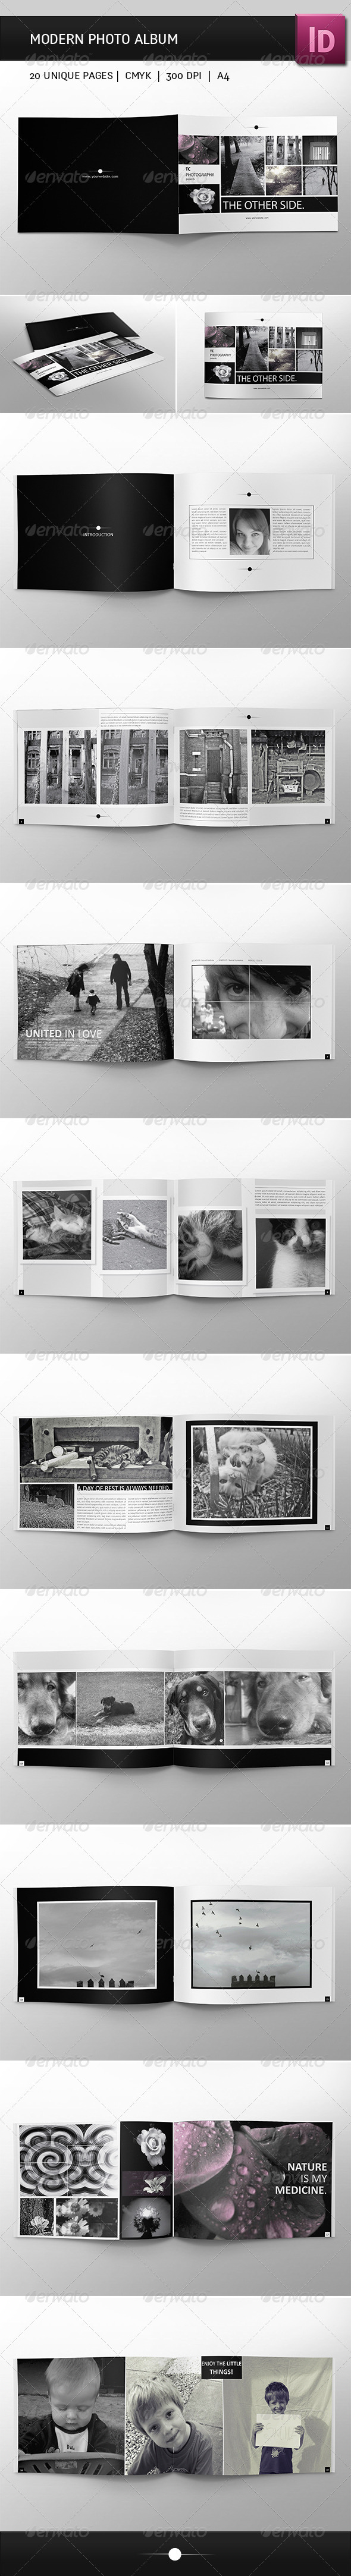 Modern Photo Album - Photo Albums Print Templates